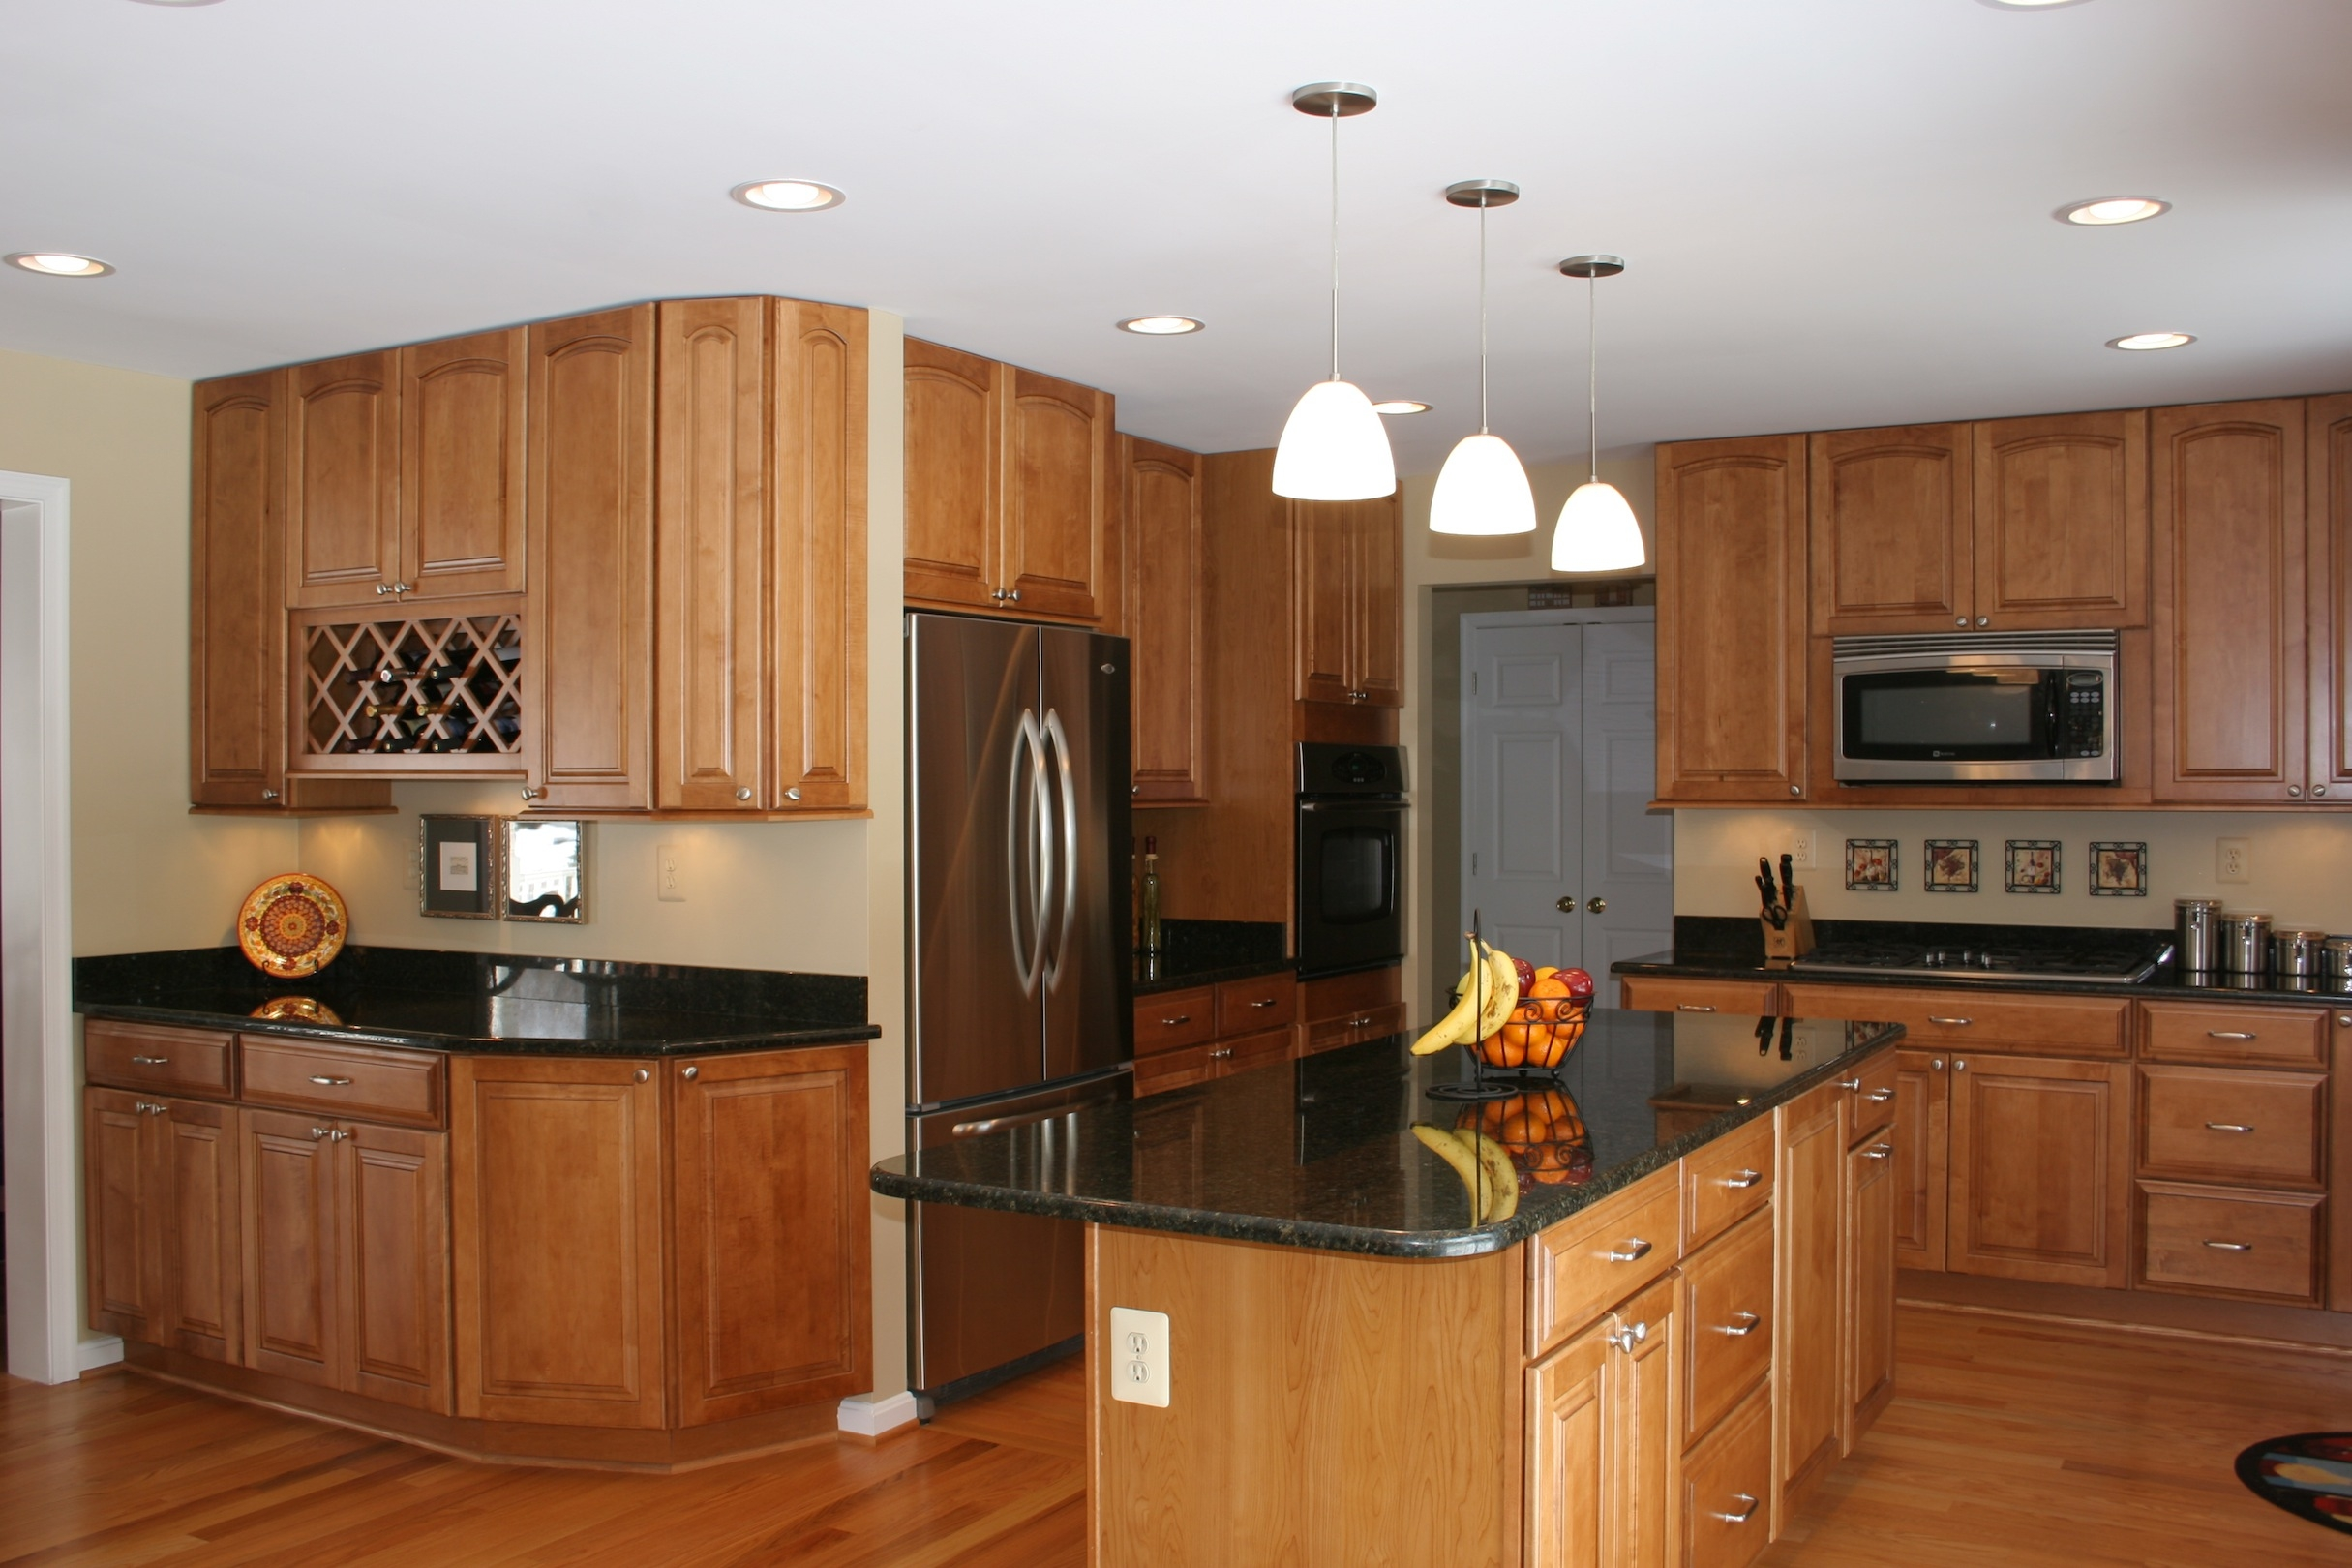 Rough Estimate For Kitchen Cabinets